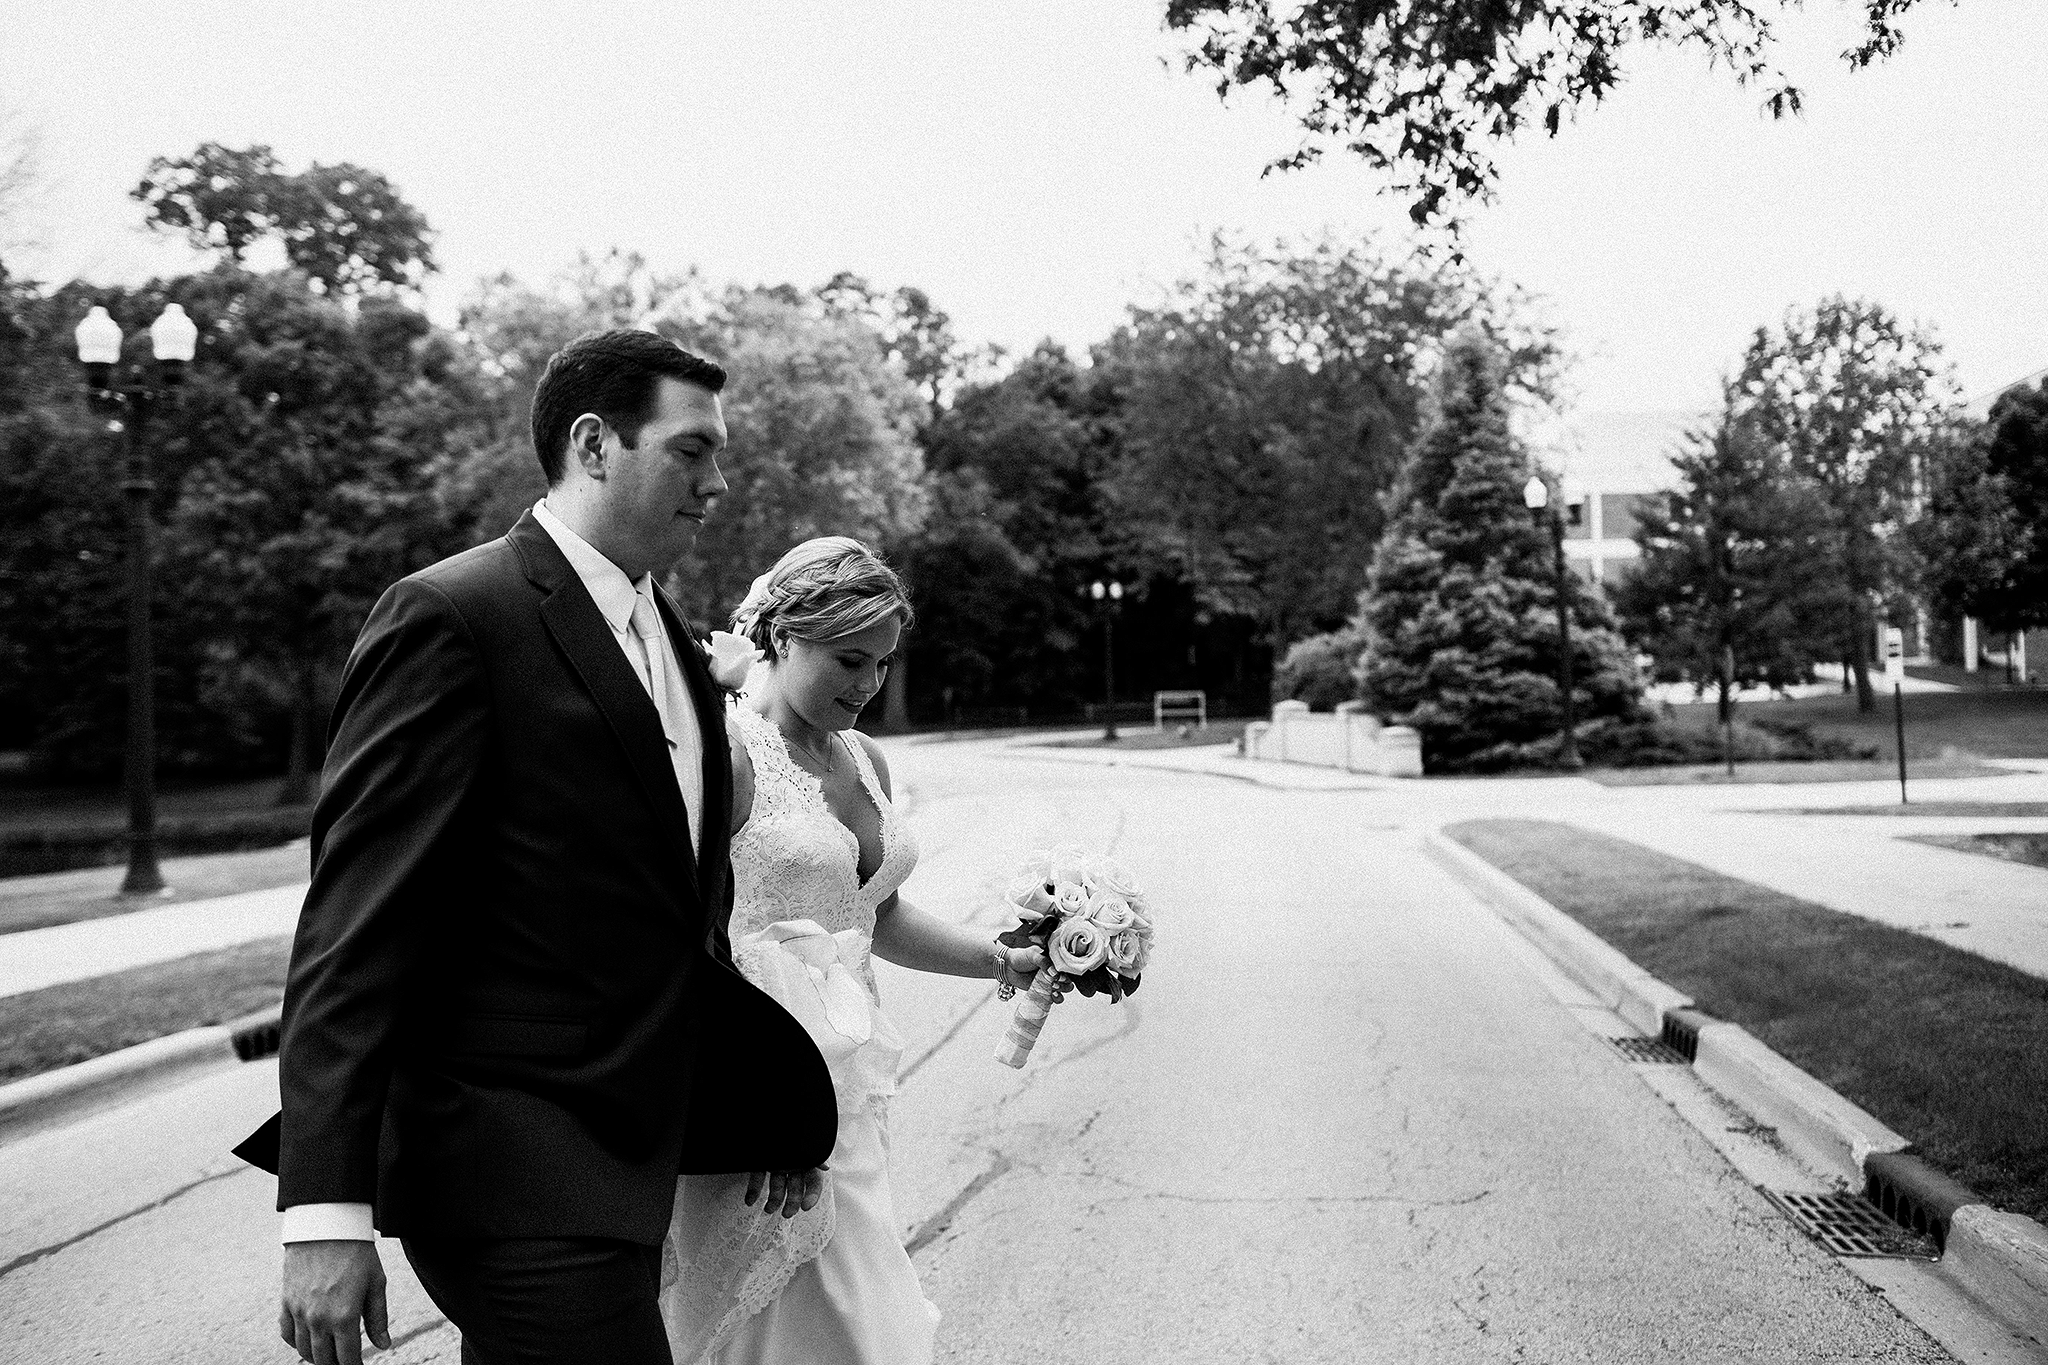 candid black and white image of bride and groom crossing street | dekalb, IL wedding photographer | chrissy deming